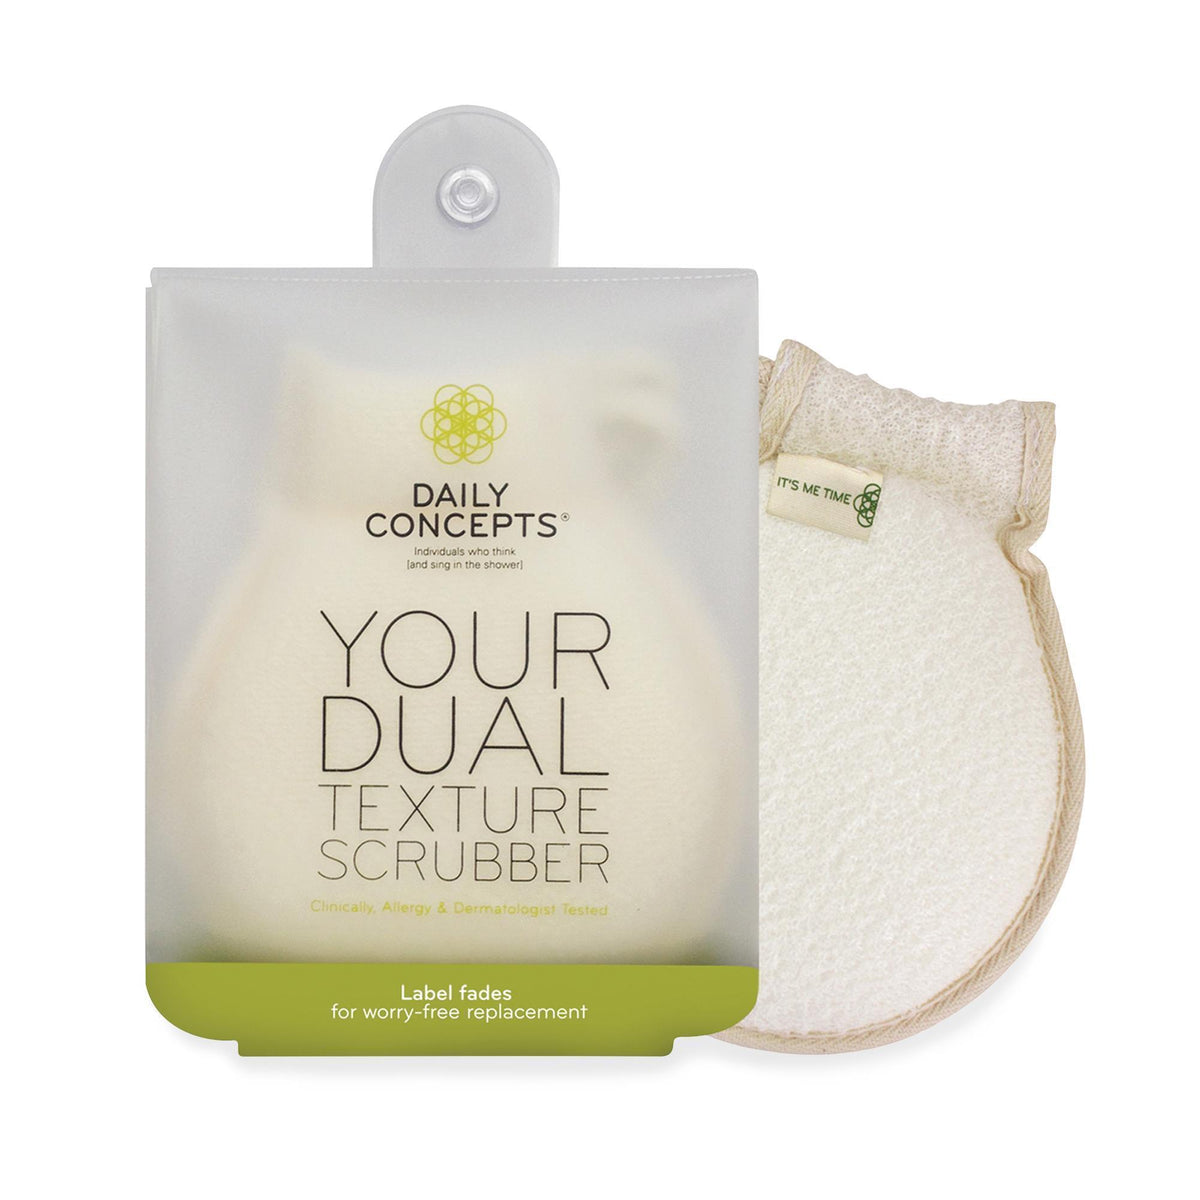 Daily Concepts Your Dual Texture Scrubber